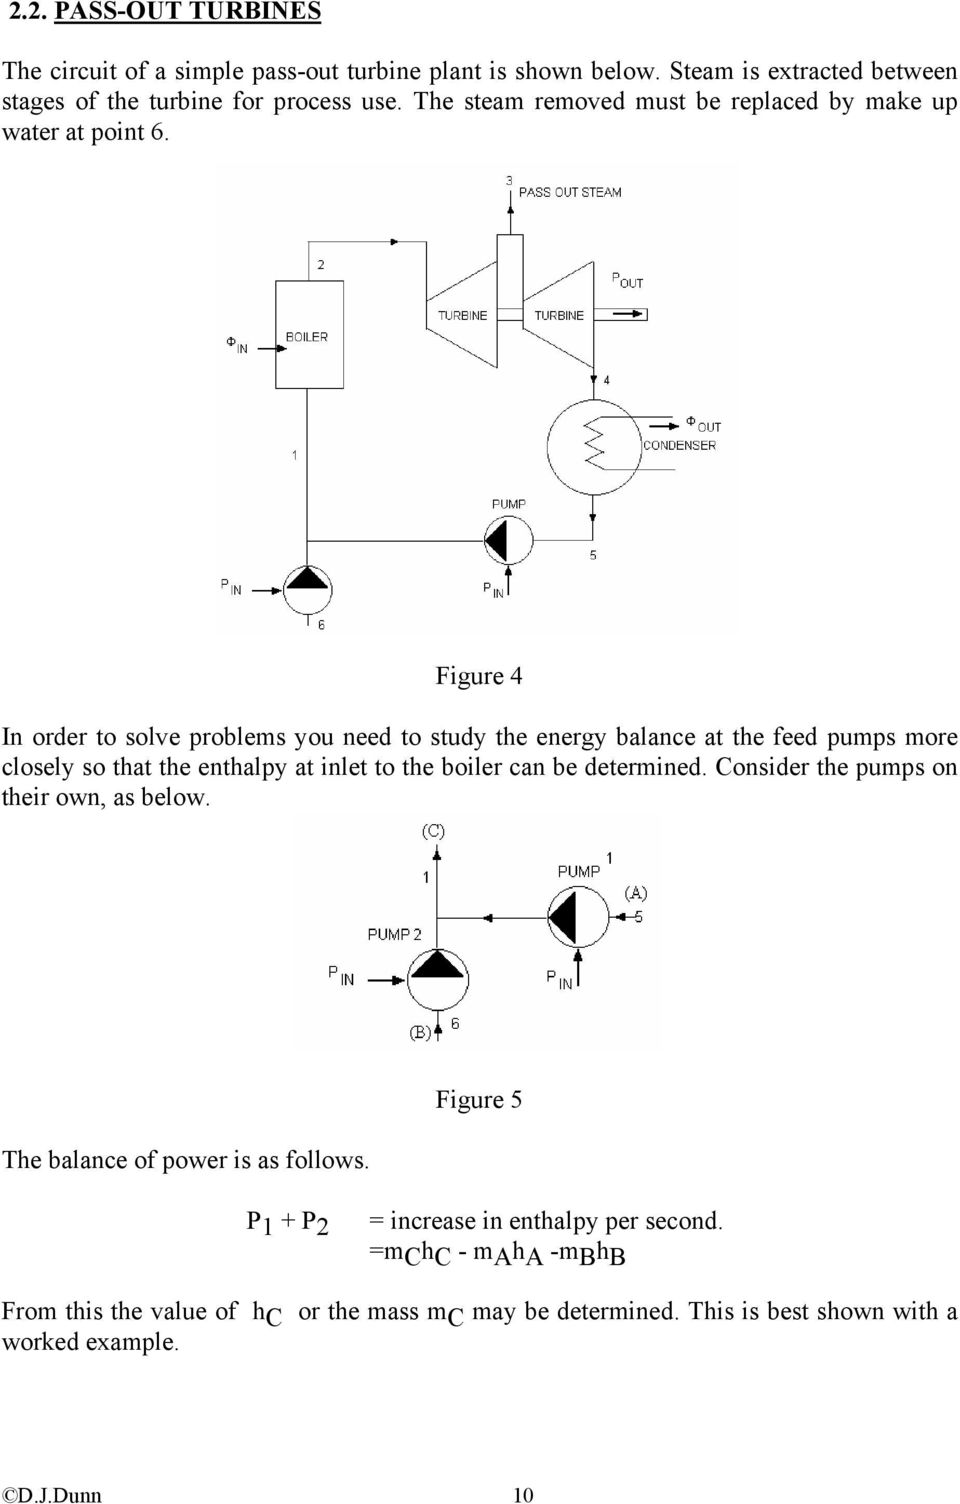 Figure 4 In order to solve problems you need to study the energy balance at the feed pumps more closely so that the enthalpy at inlet to the boiler can be